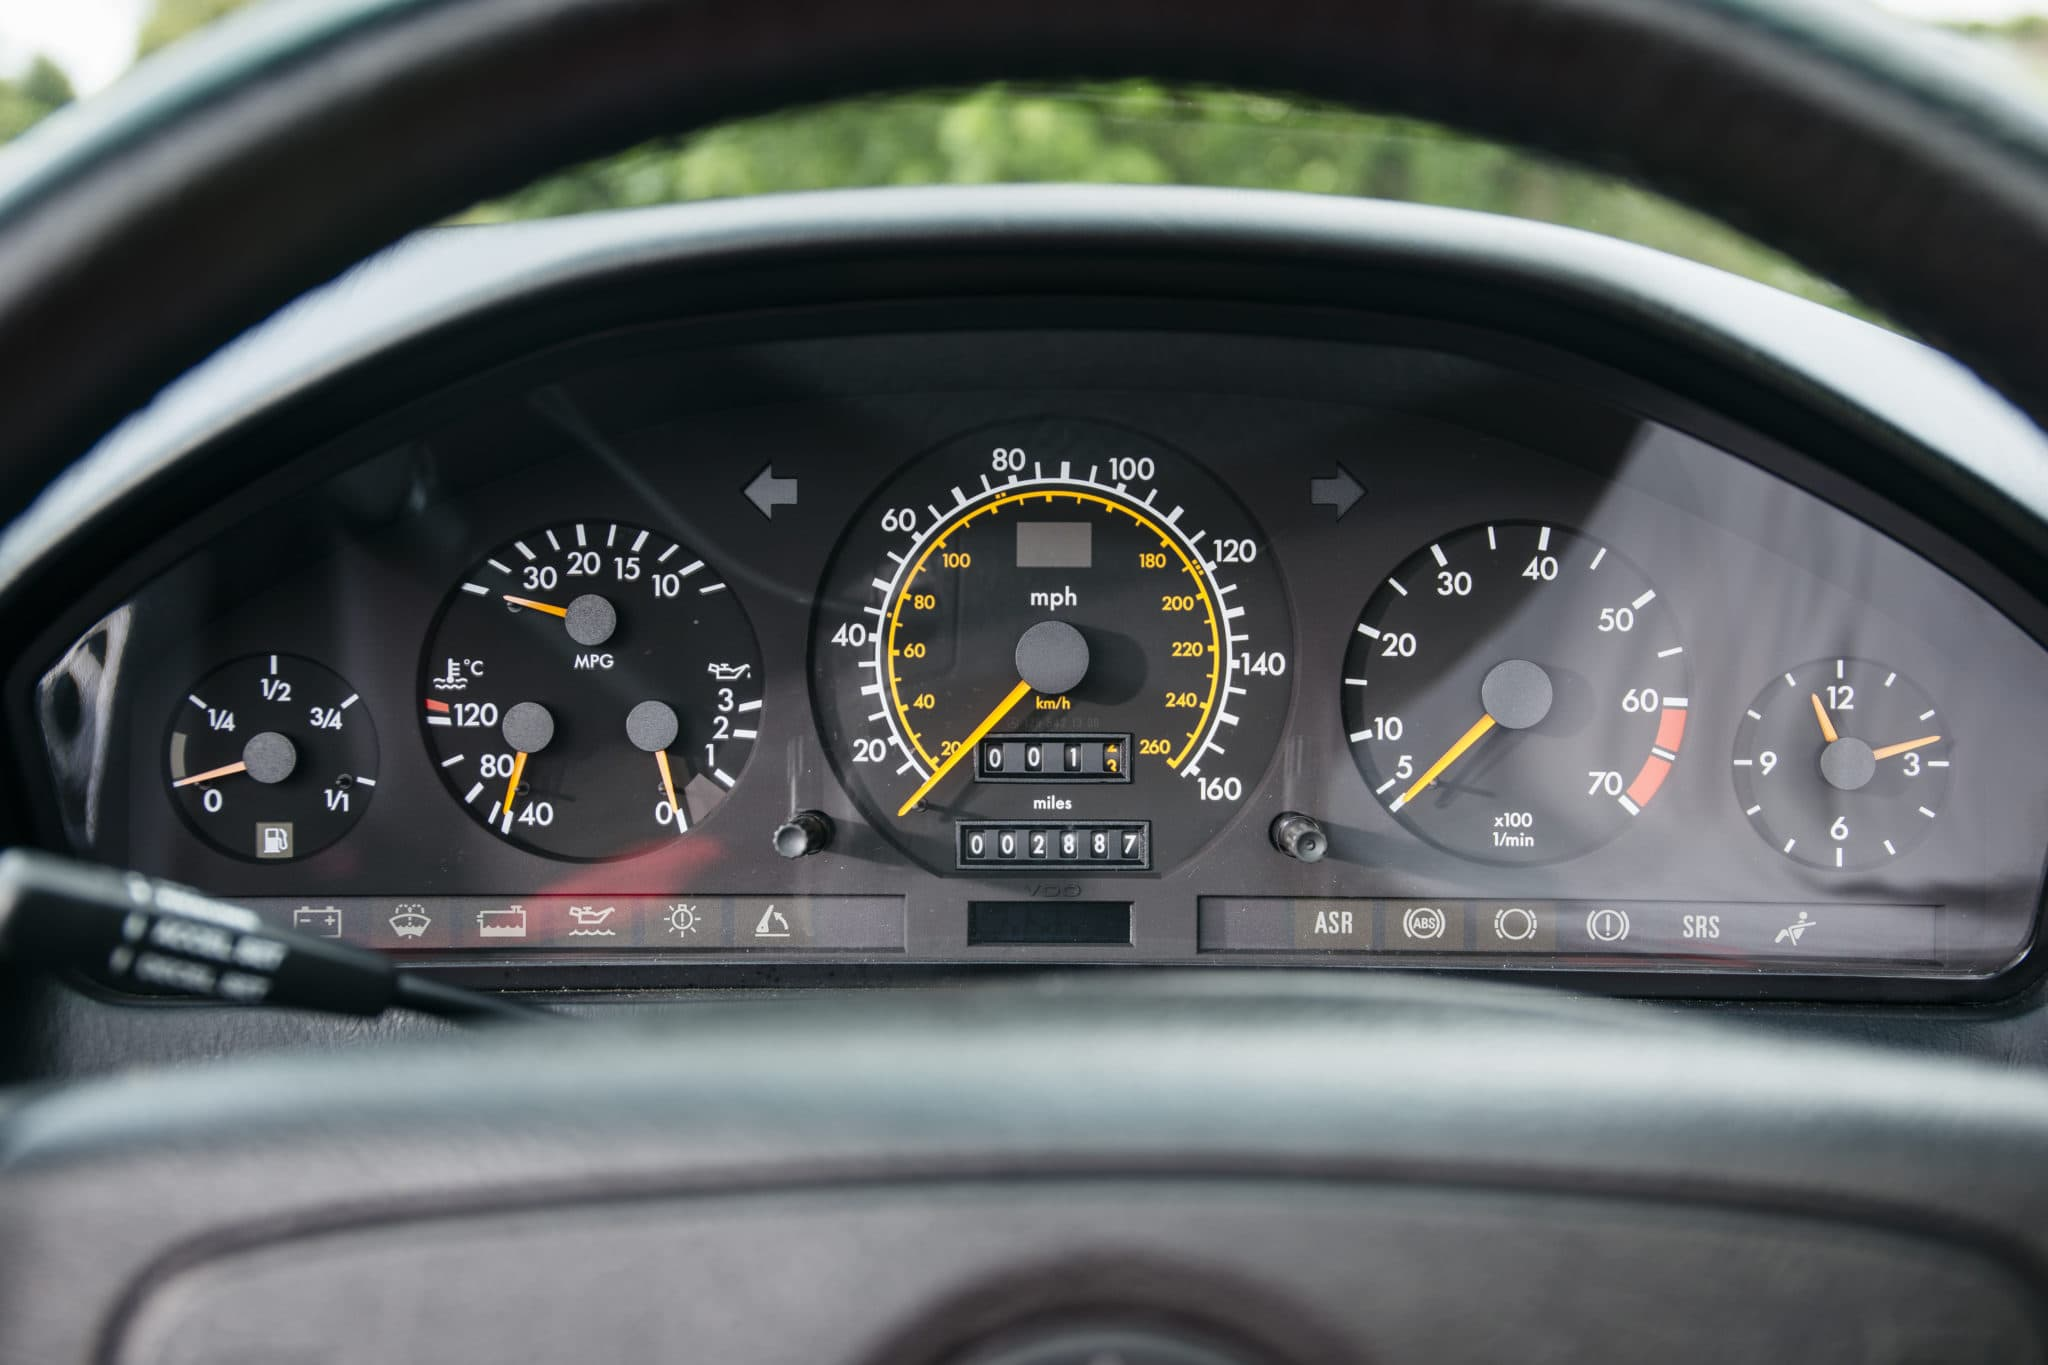 Instrument panel of a 1993 R129 MERCEDES-BENZ 500SL – 2,800 MILES FROM NEW